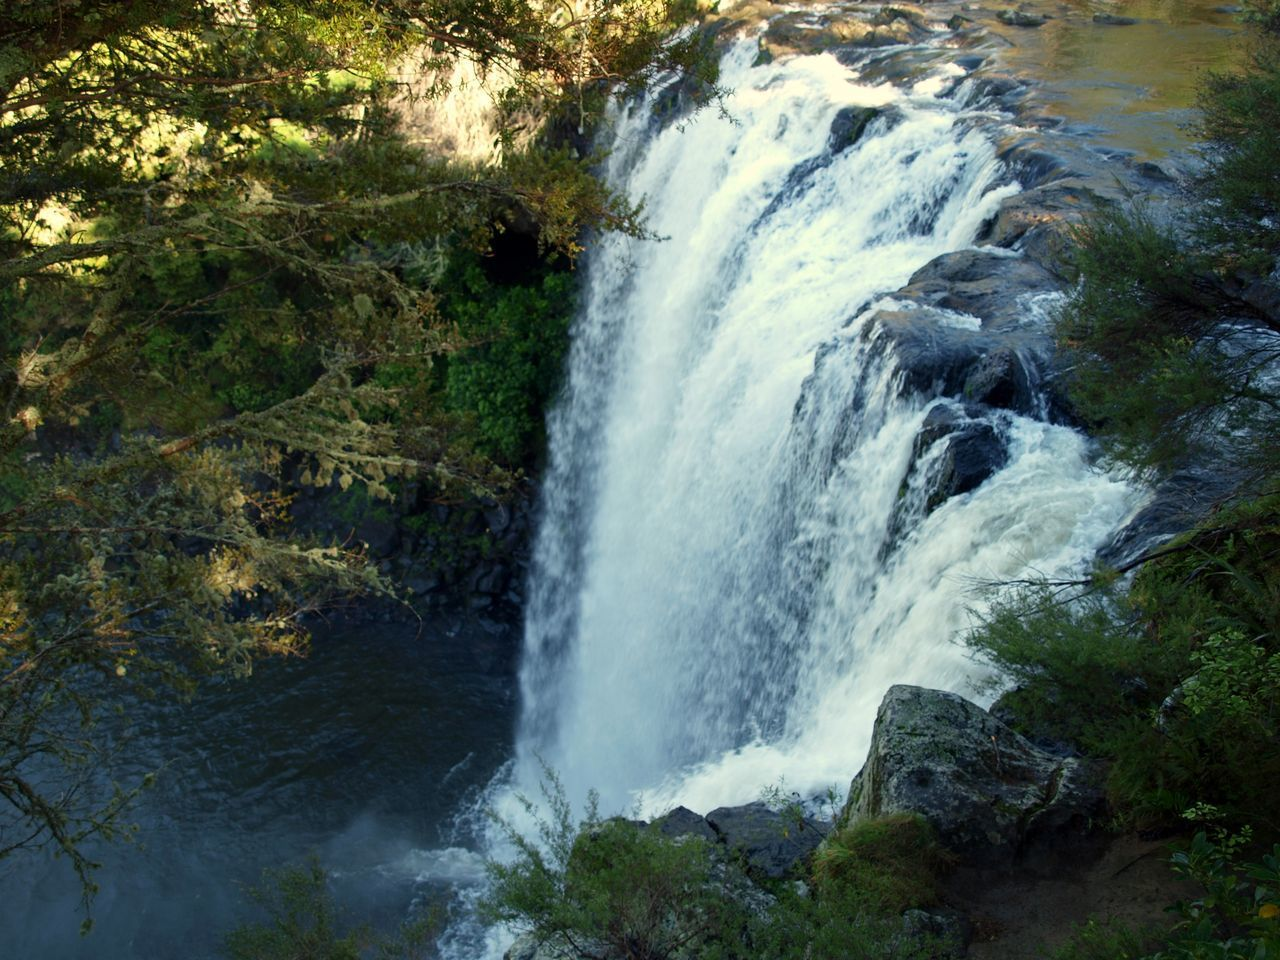 Elevated view of waterfall